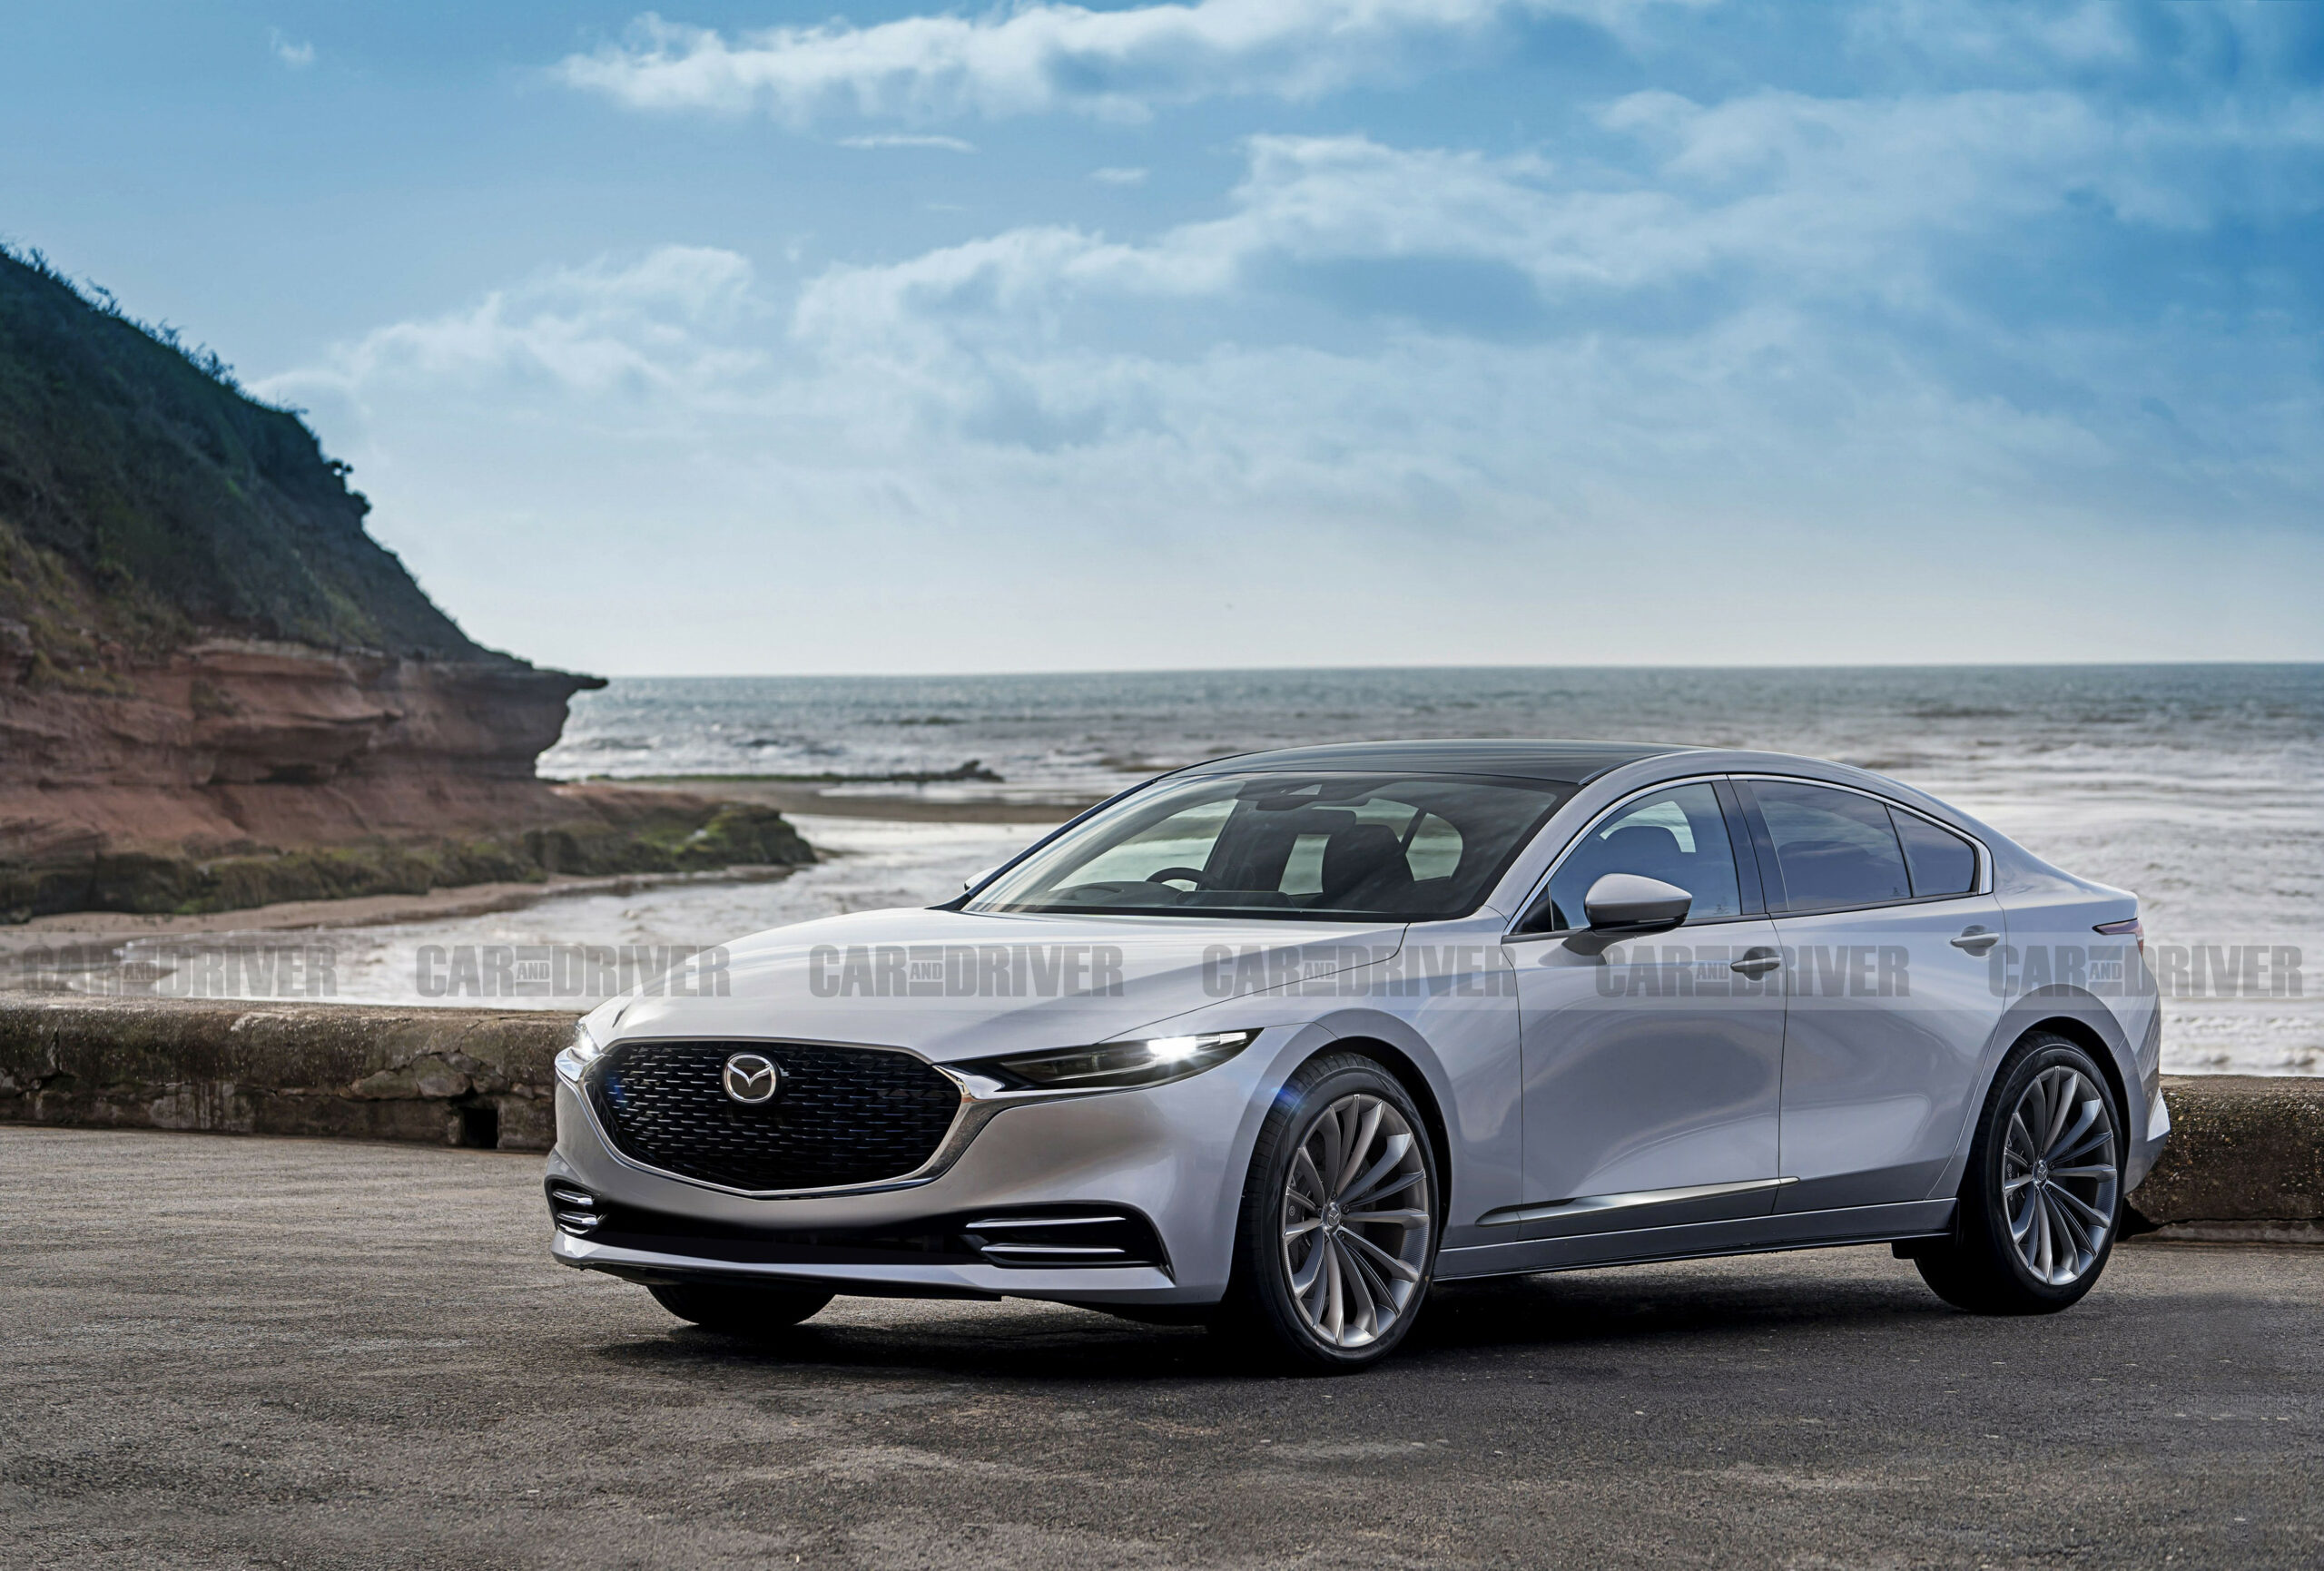 Redesign and Review 2022 Mazda CX-9